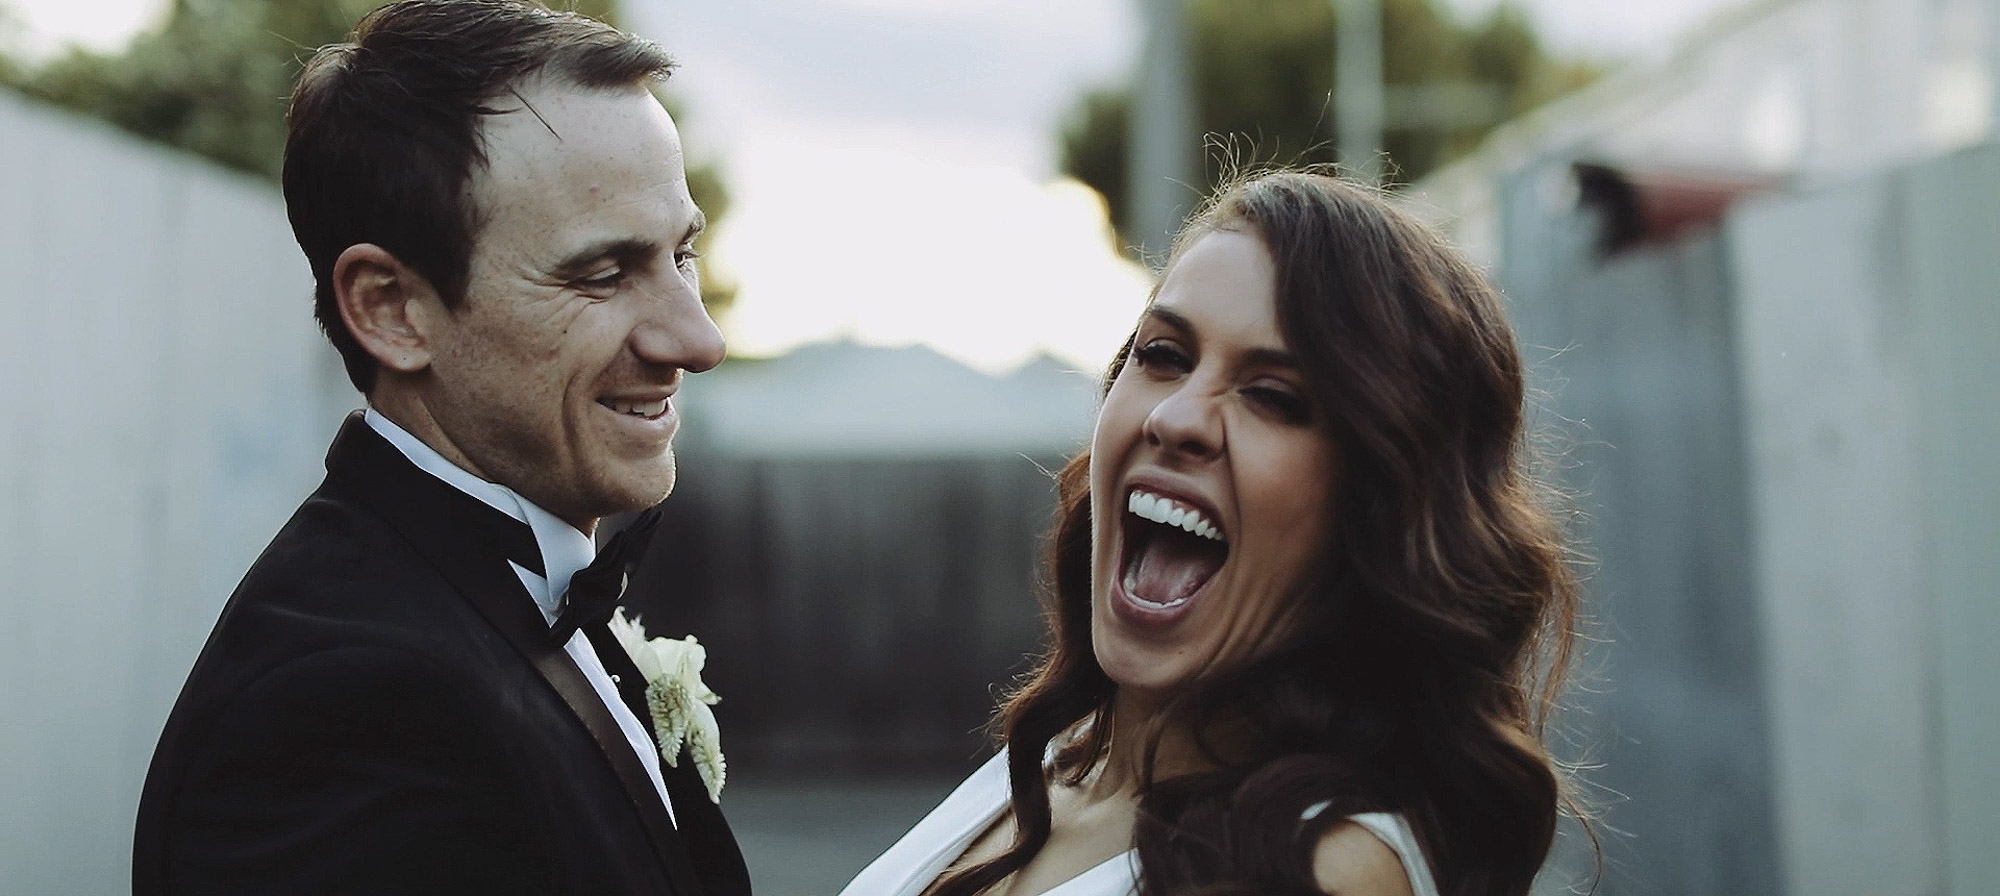 Annette and Dani Films - Burgess Video -  Melbourne Wedding Videoraphers  -Steph and Jesse_.jpg